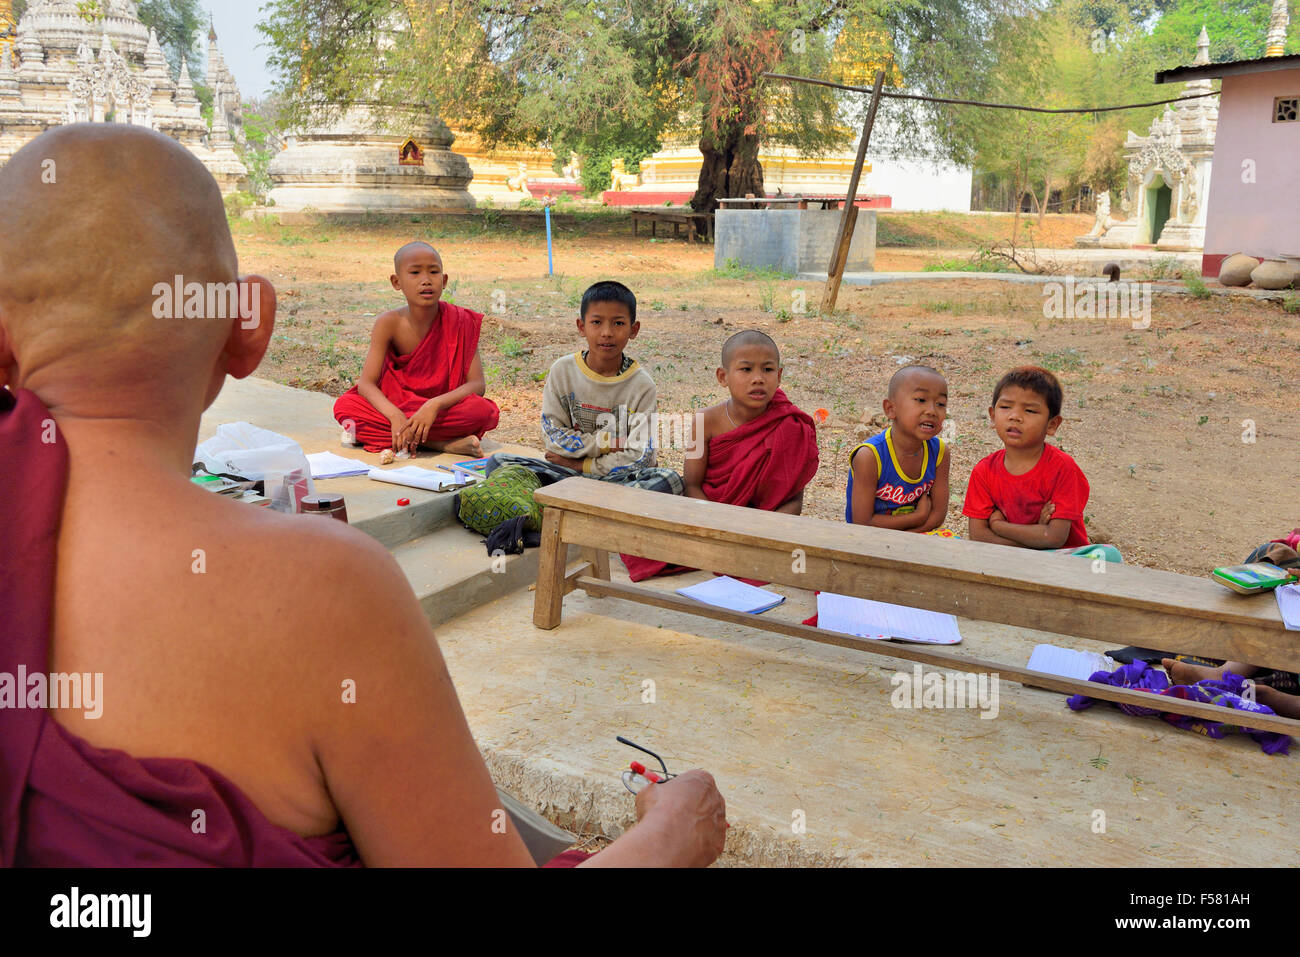 Buddhist Monk teaching schoolchildren lessons outdoors in the grounds of stupas and temples near Mandalay Myanmar - Stock Image